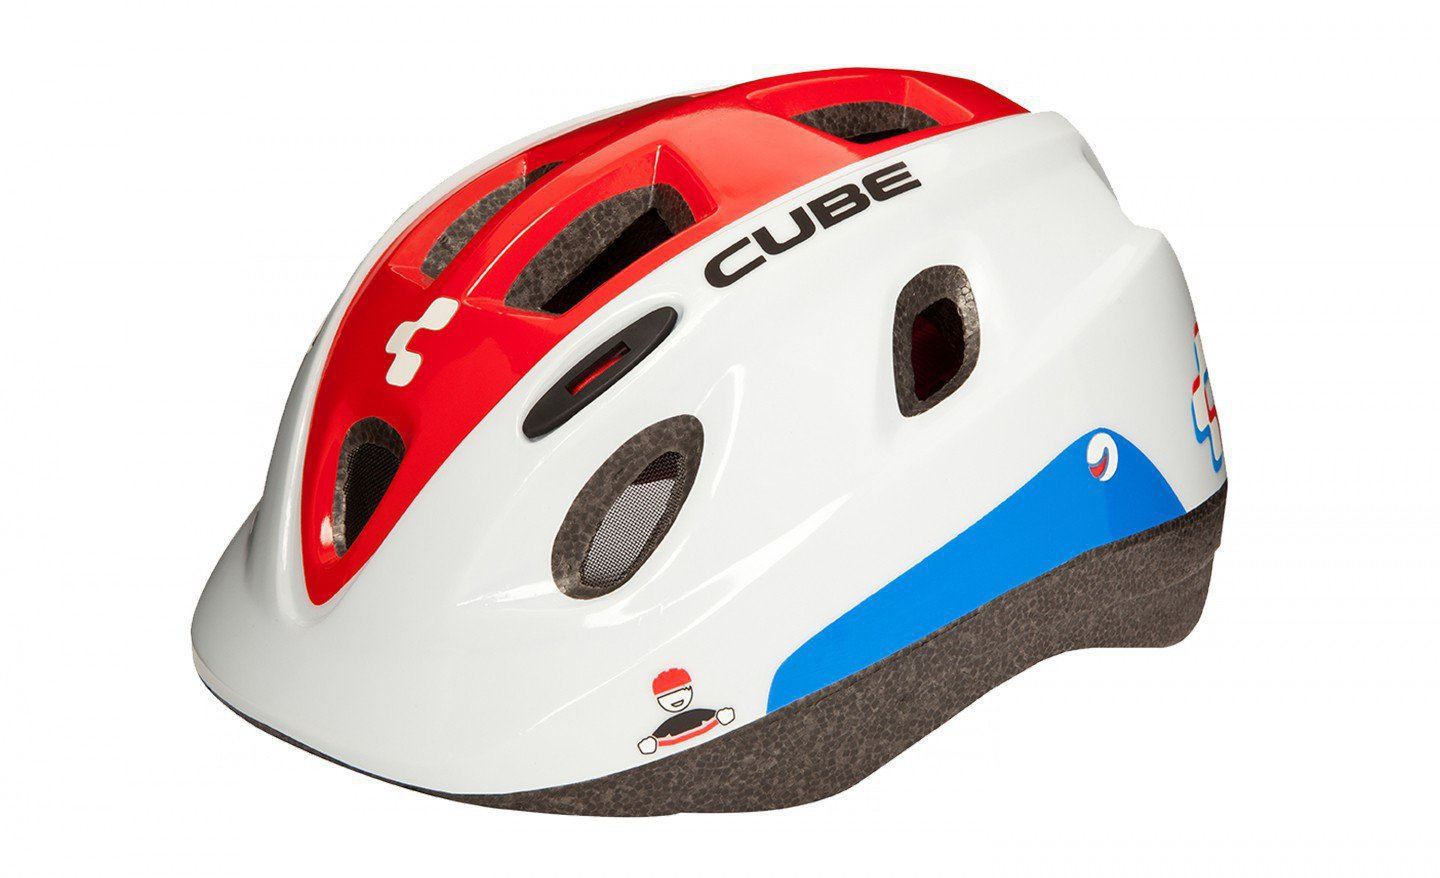 Шлем CUBE Helm PRO JUNIOR Teamline; р-р S(50-54)